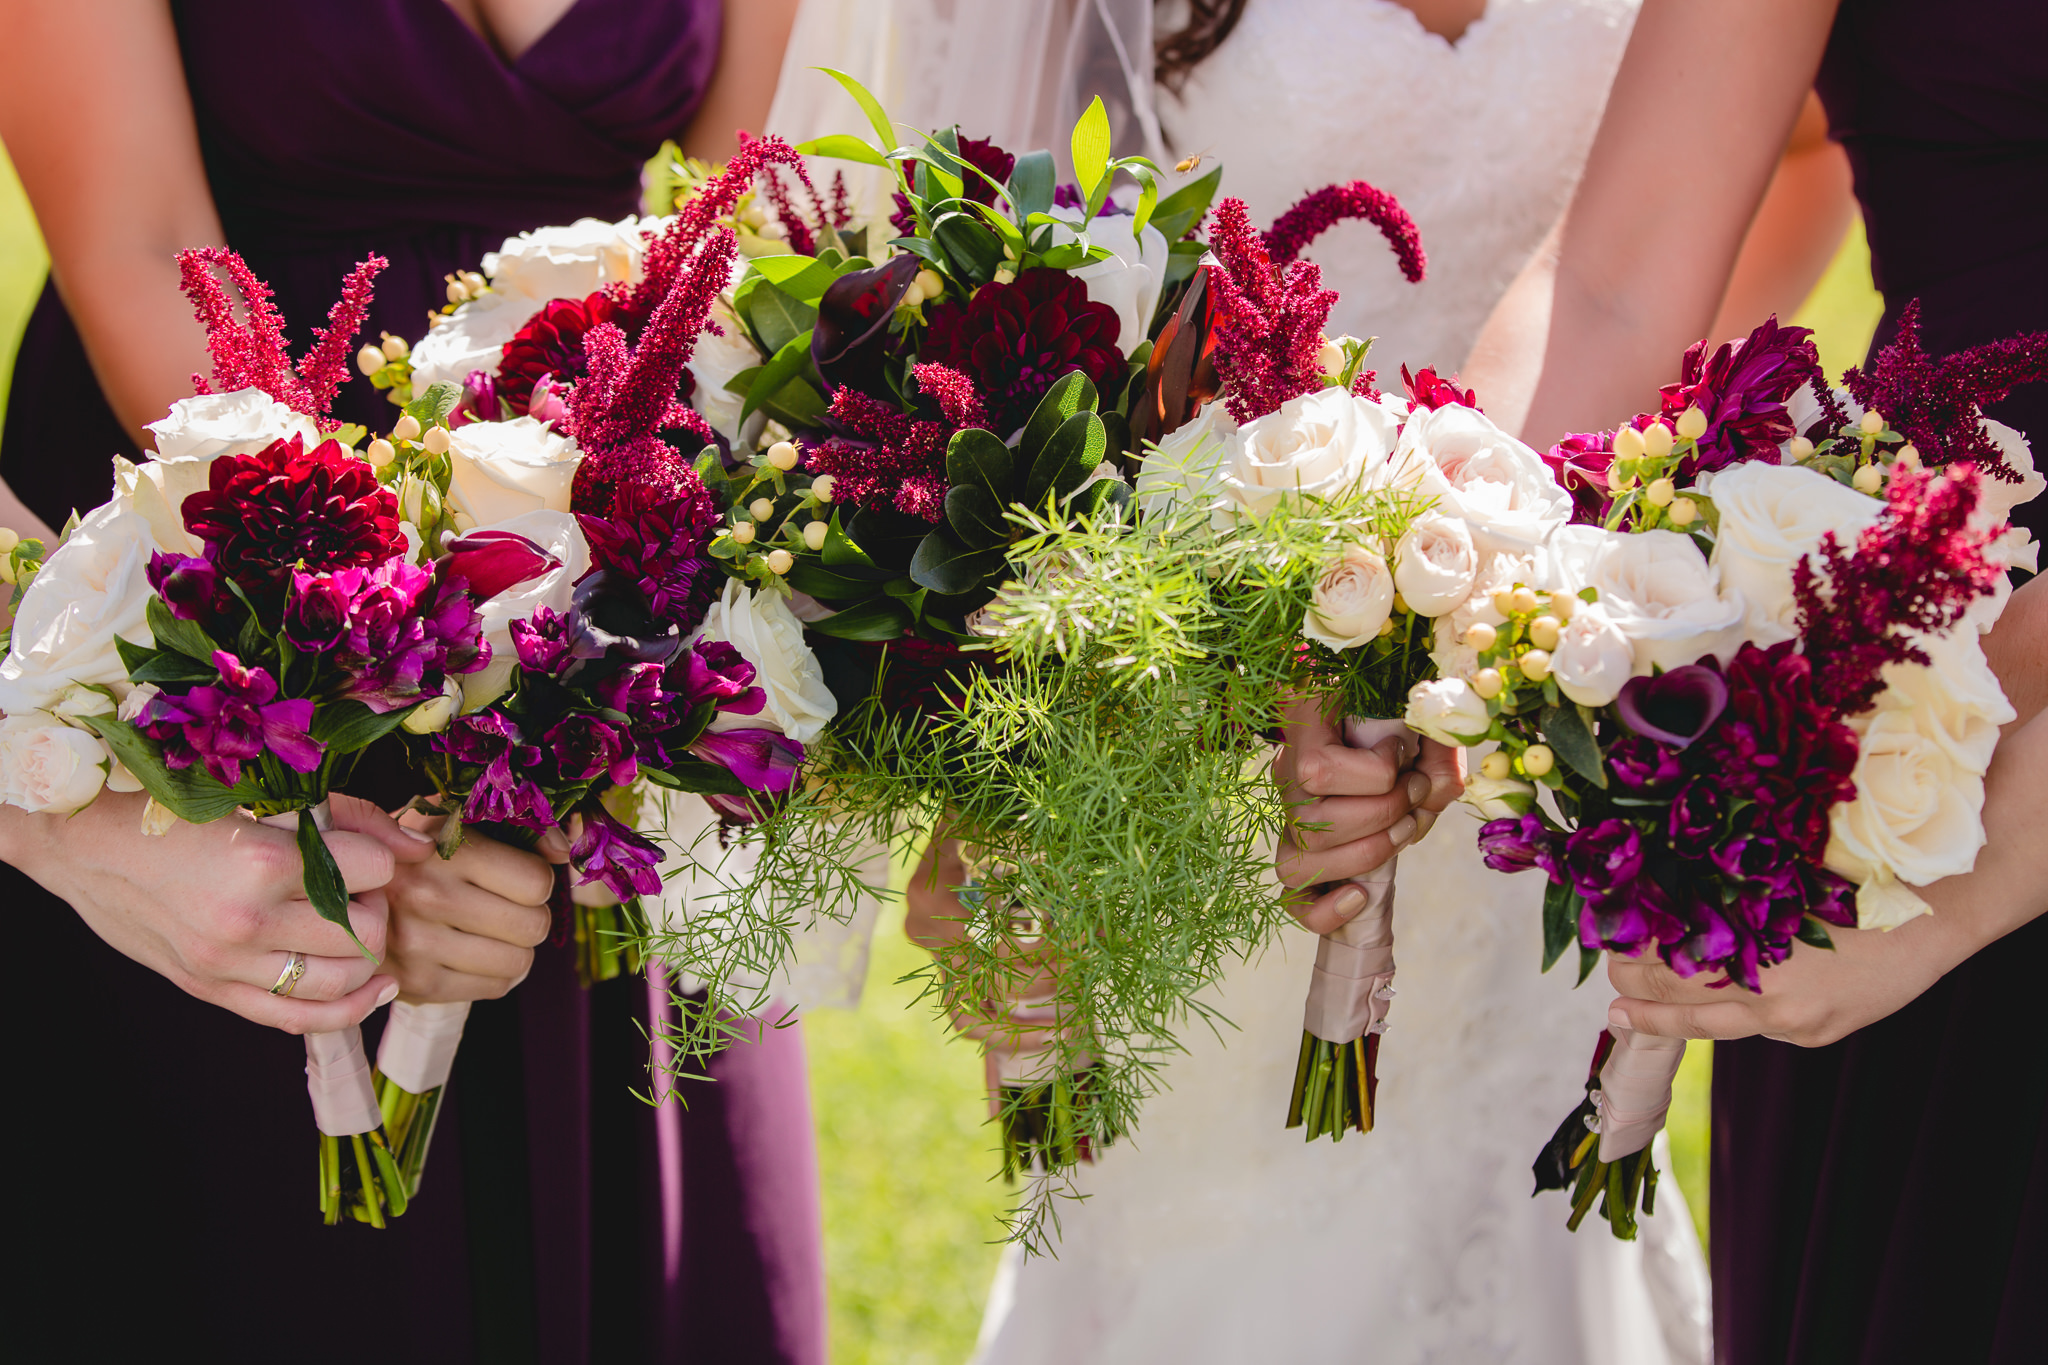 Bridal bouquets by Events by Jarrod at White Barn